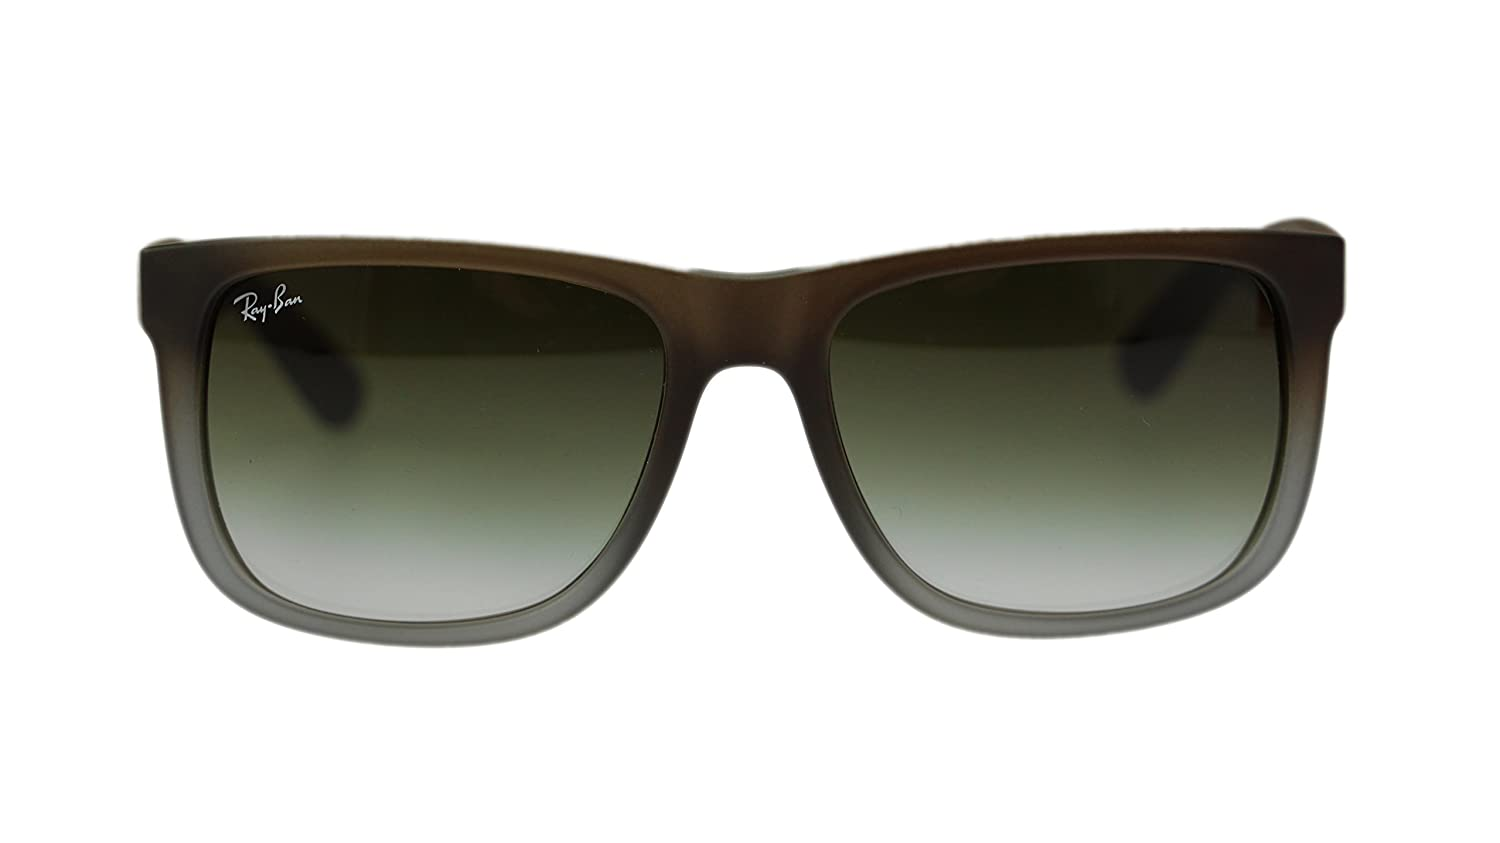 27e19943f7d2 Amazon.com  Ray Ban Justin Mens Sunglasses RB4165 854 7Z Rubber Brown on  Grey 55mm  Clothing